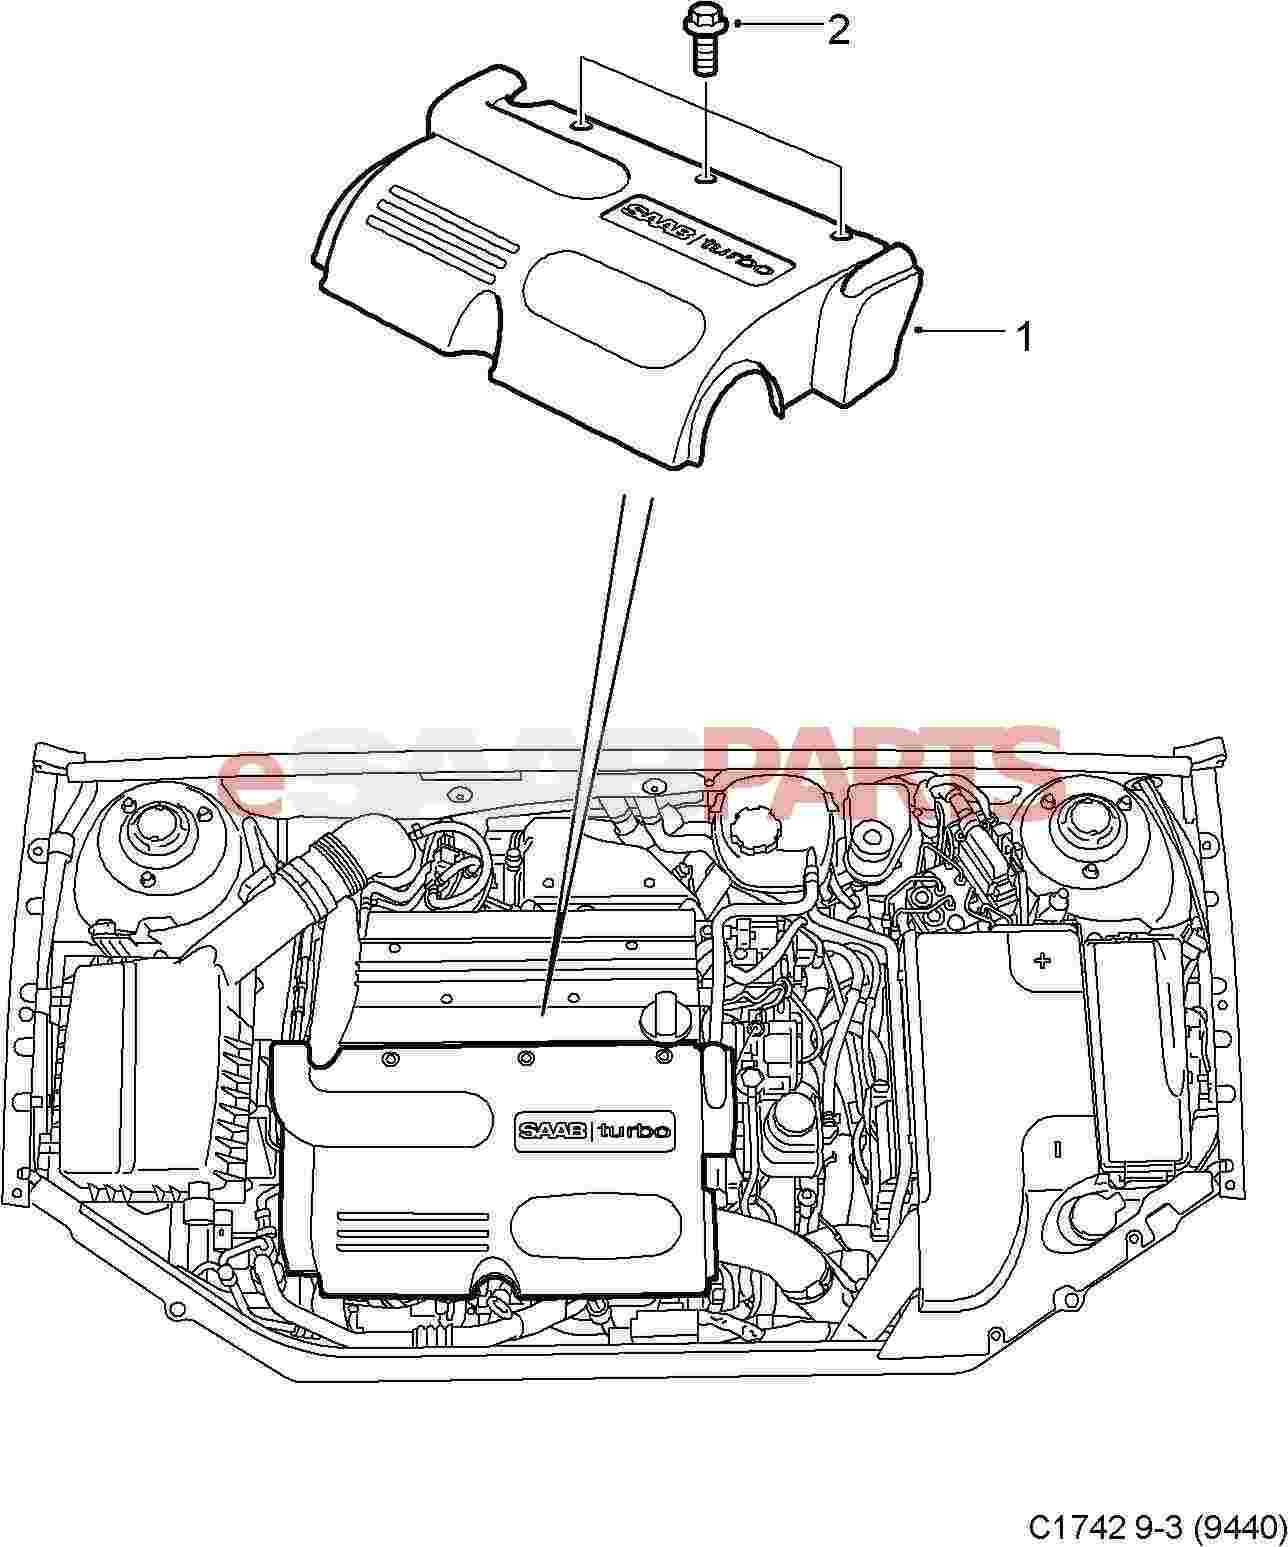 mazda cx 7 fuse box diagram